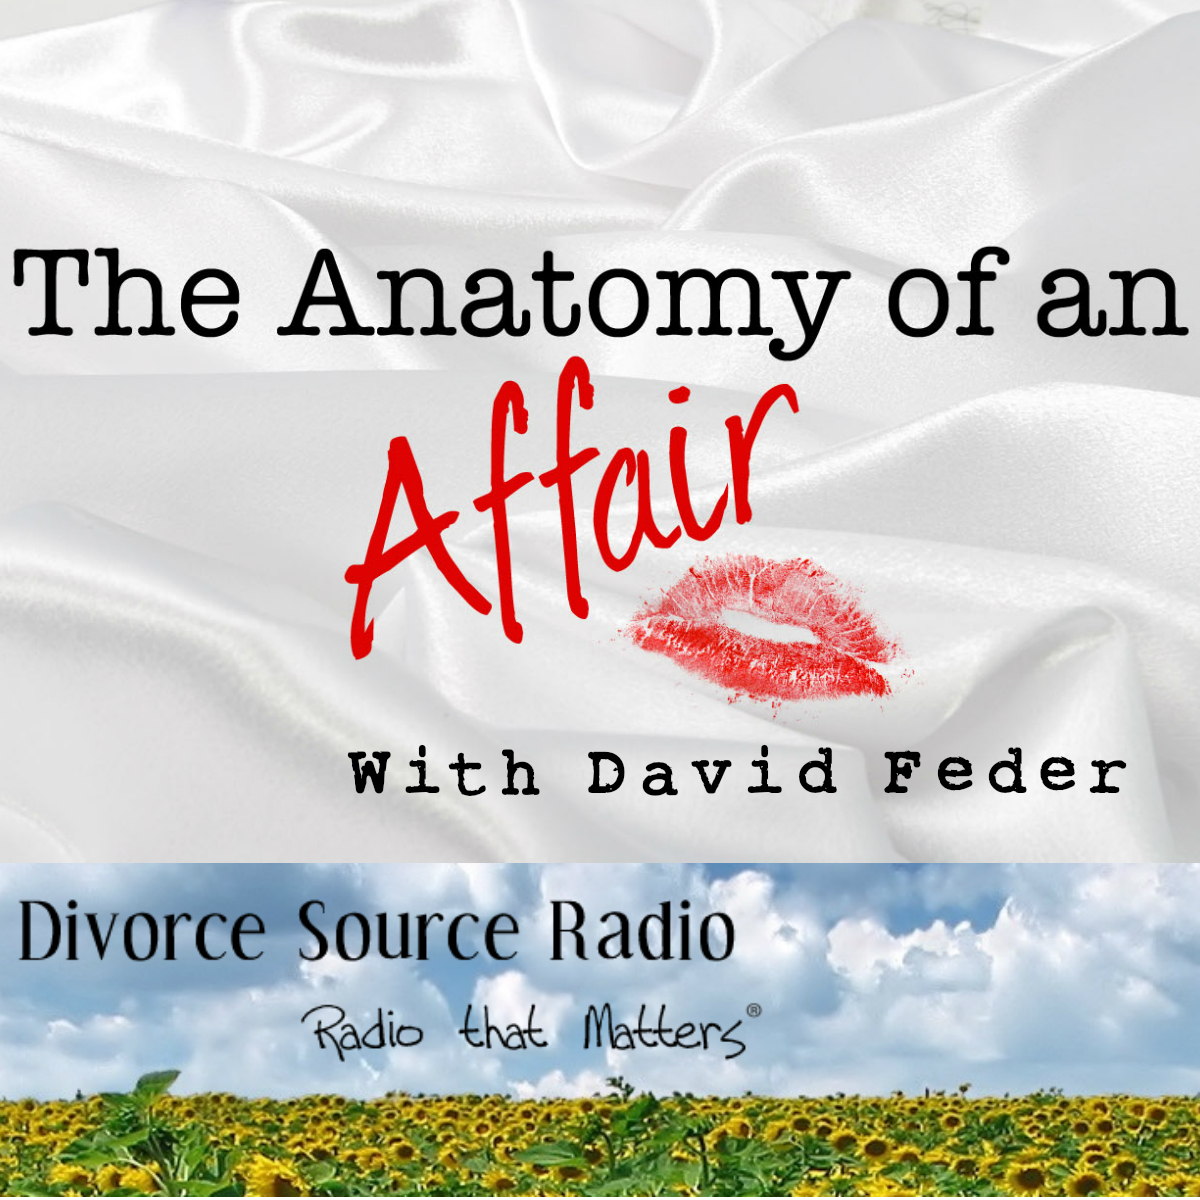 My Life After An Affair Archives - Divorce Source Radio | Divorce ...